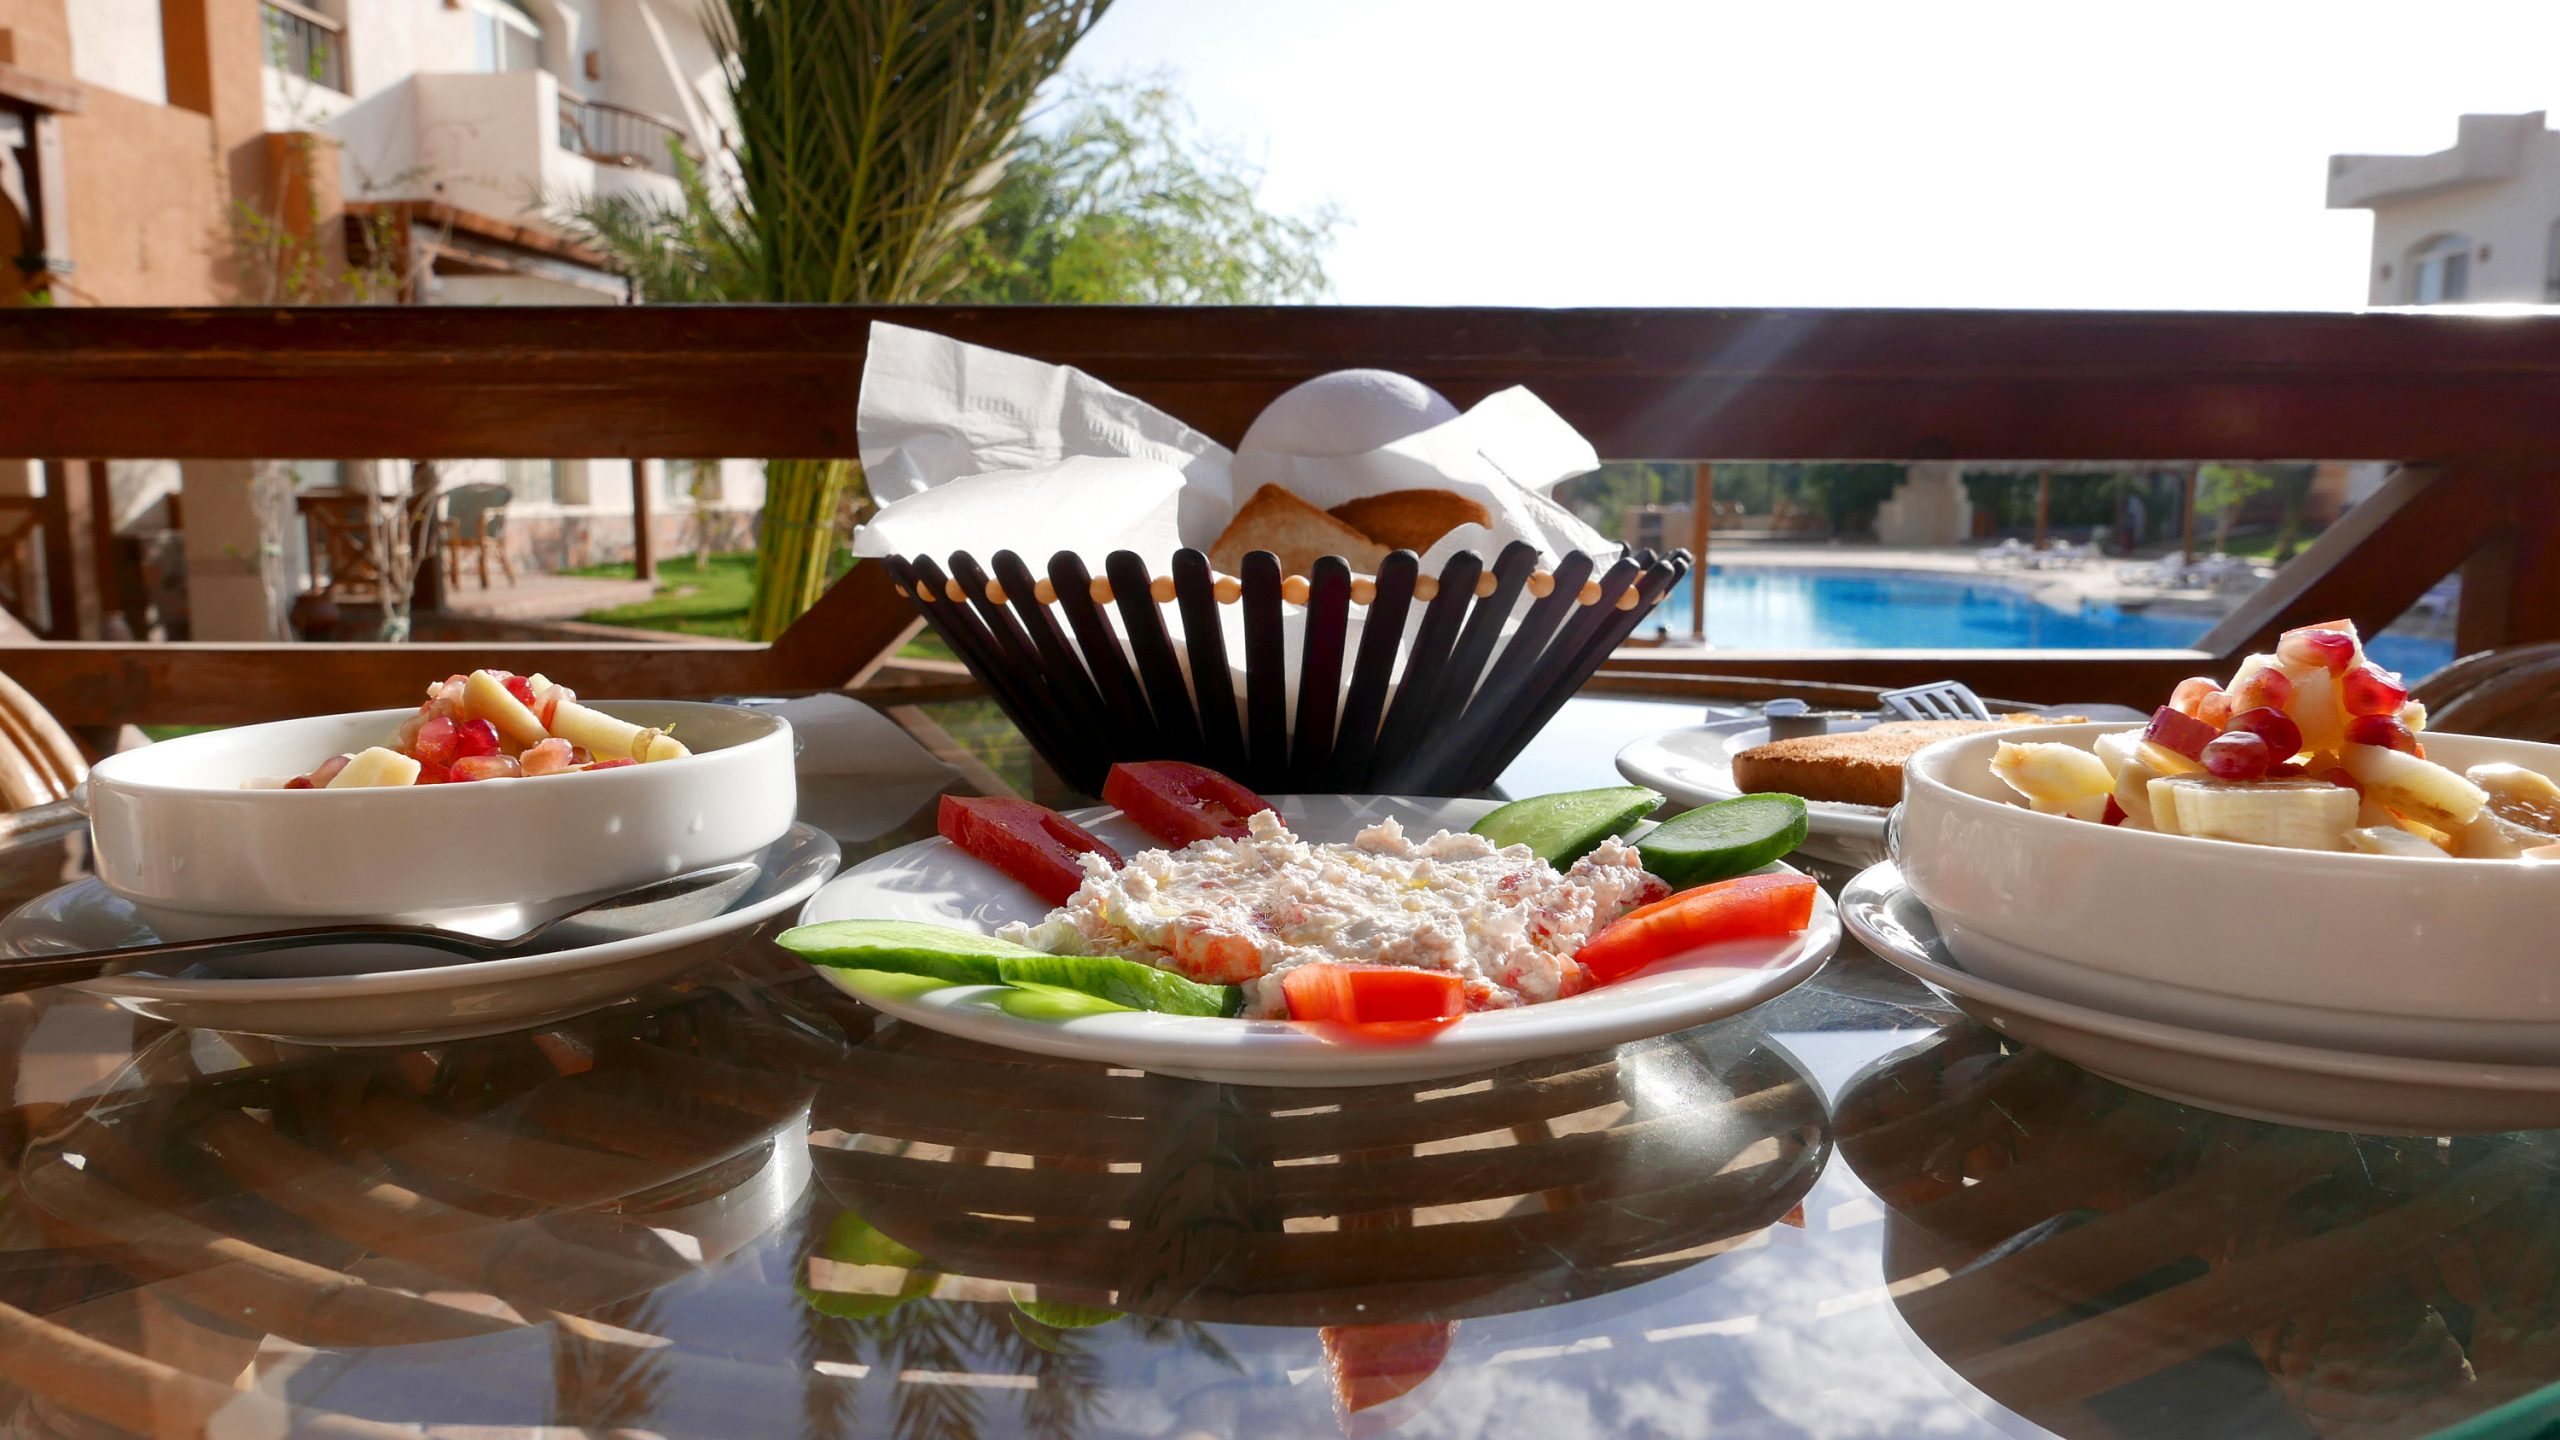 sheikh ali dahab resort breakfast